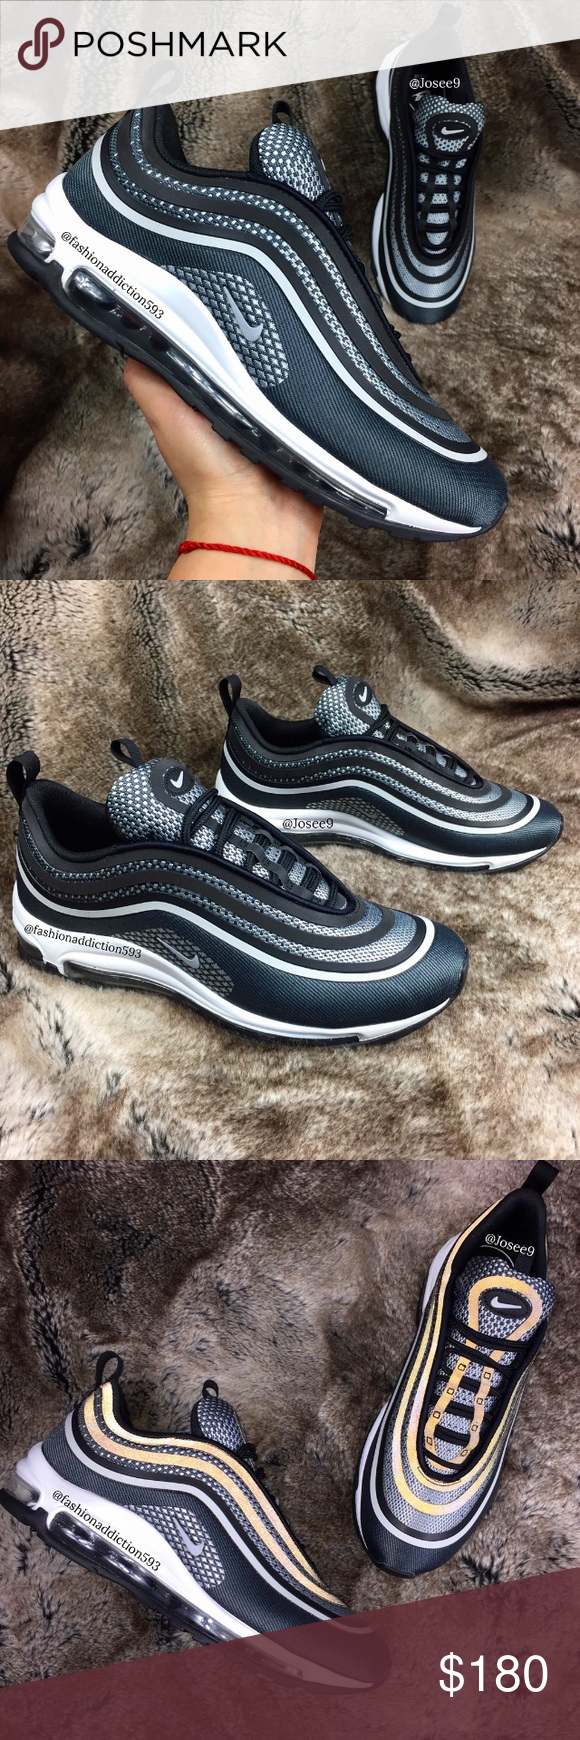 release date 363df 86be2 Nike Air Max 97 Ultra  17 Women s Black Oreo shoes •Brand new •Authentic  •Box not included •Please check out my listings for more Air Max Roshe and  Running ...